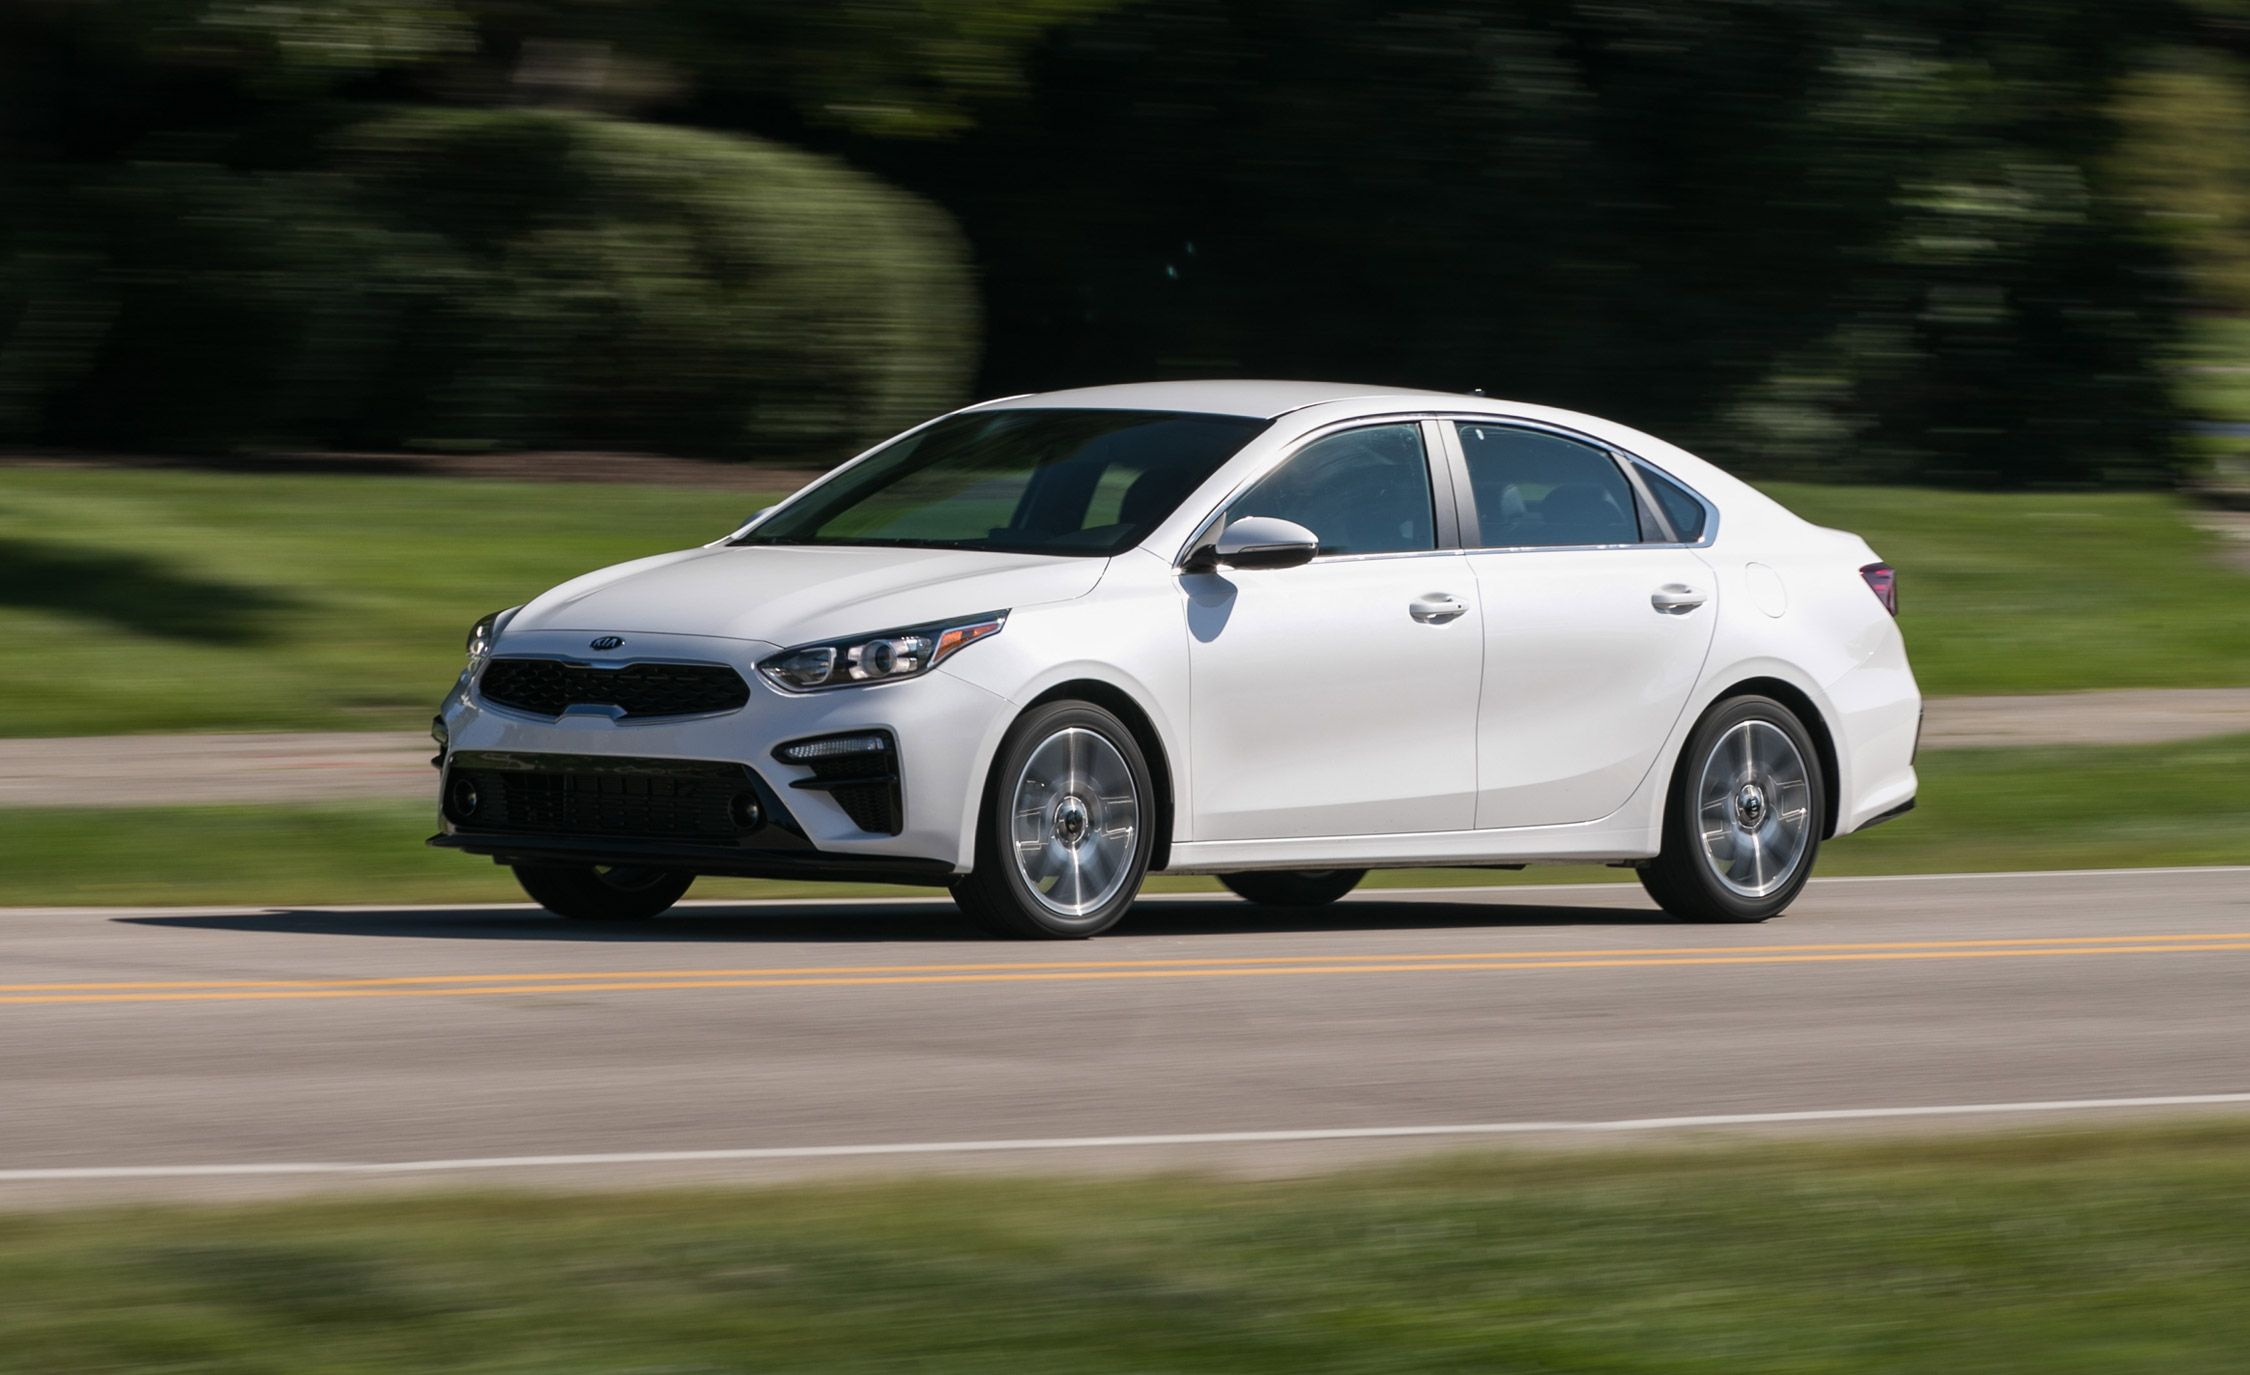 2020 Kia Forte Forte5 Reviews Kia Forte Forte5 Price Photos